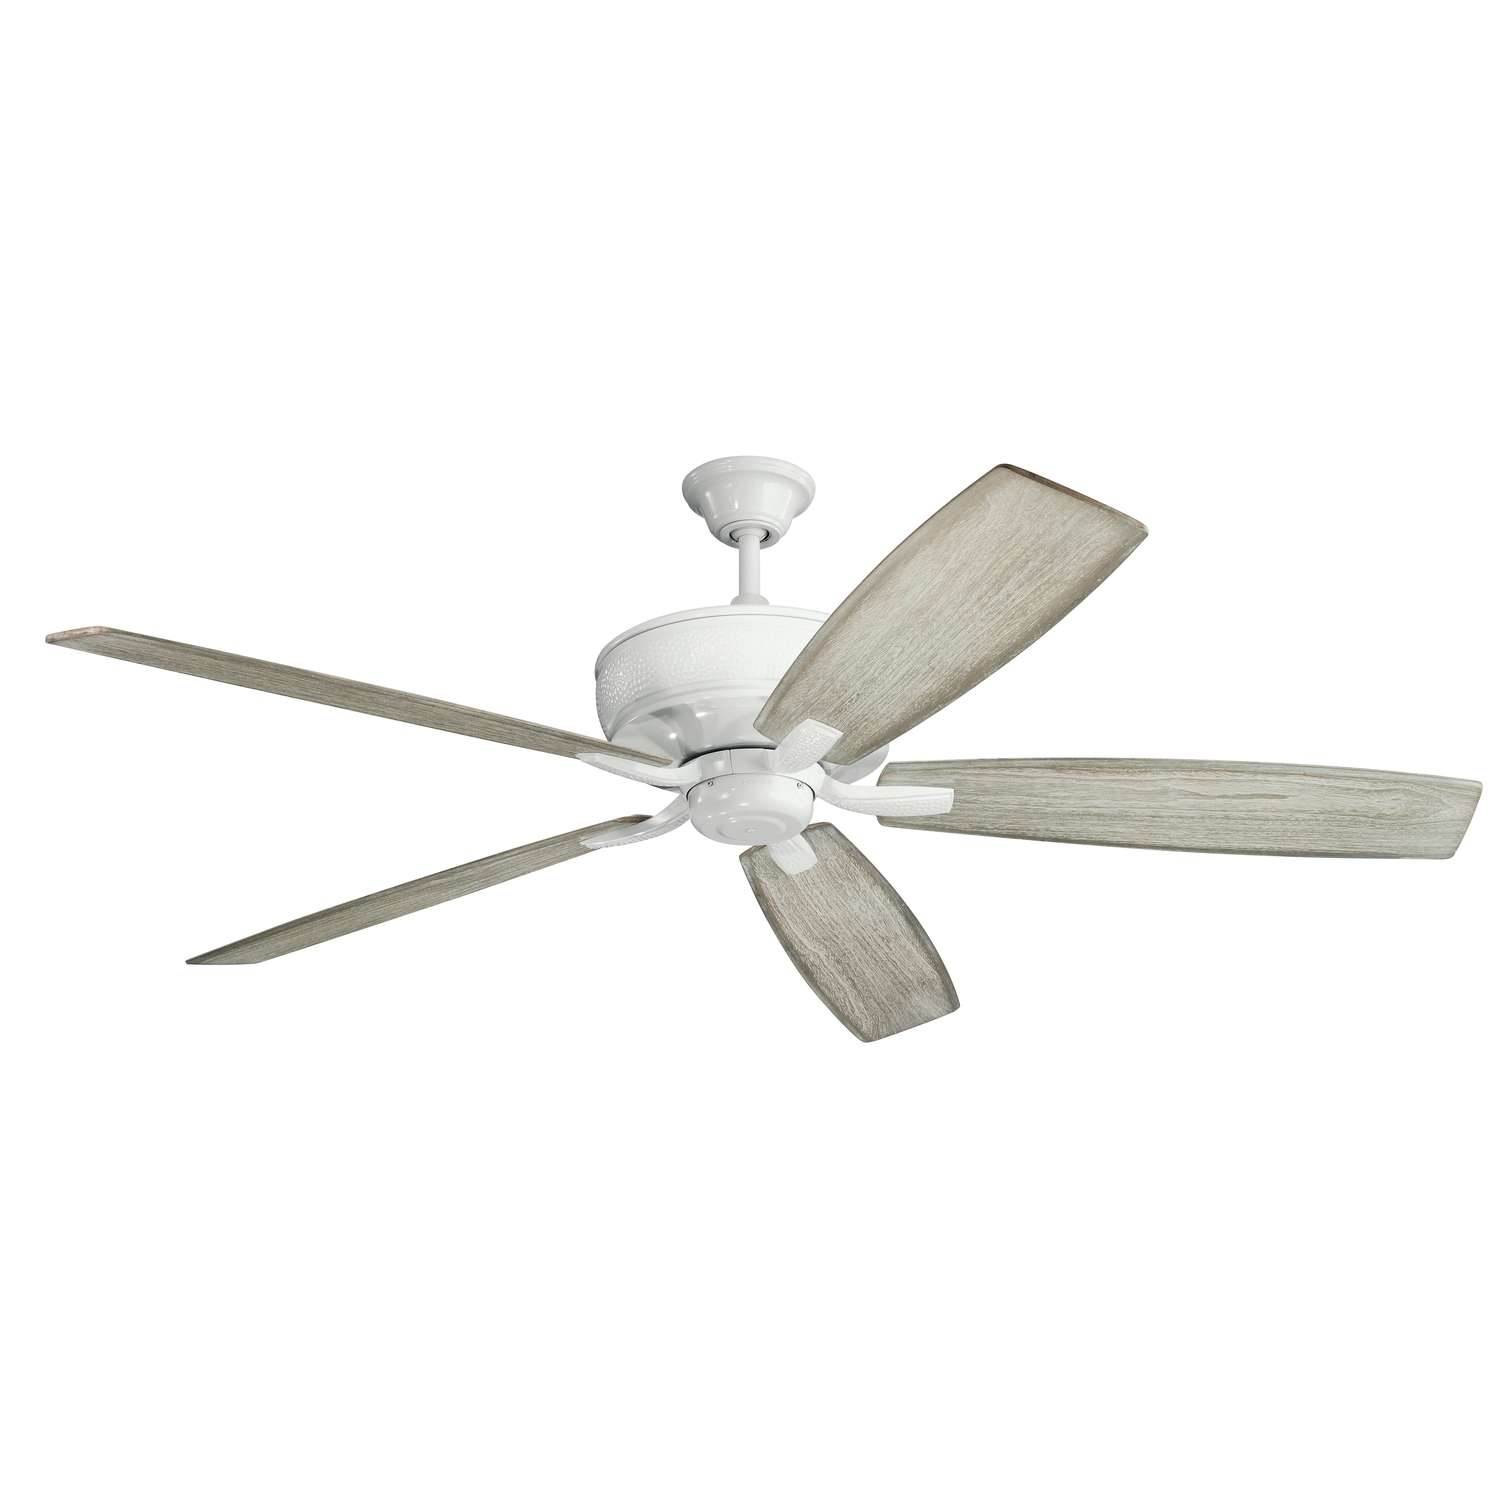 70 inchCeiling Fan from the Monarch collection by Kichler 300206WH